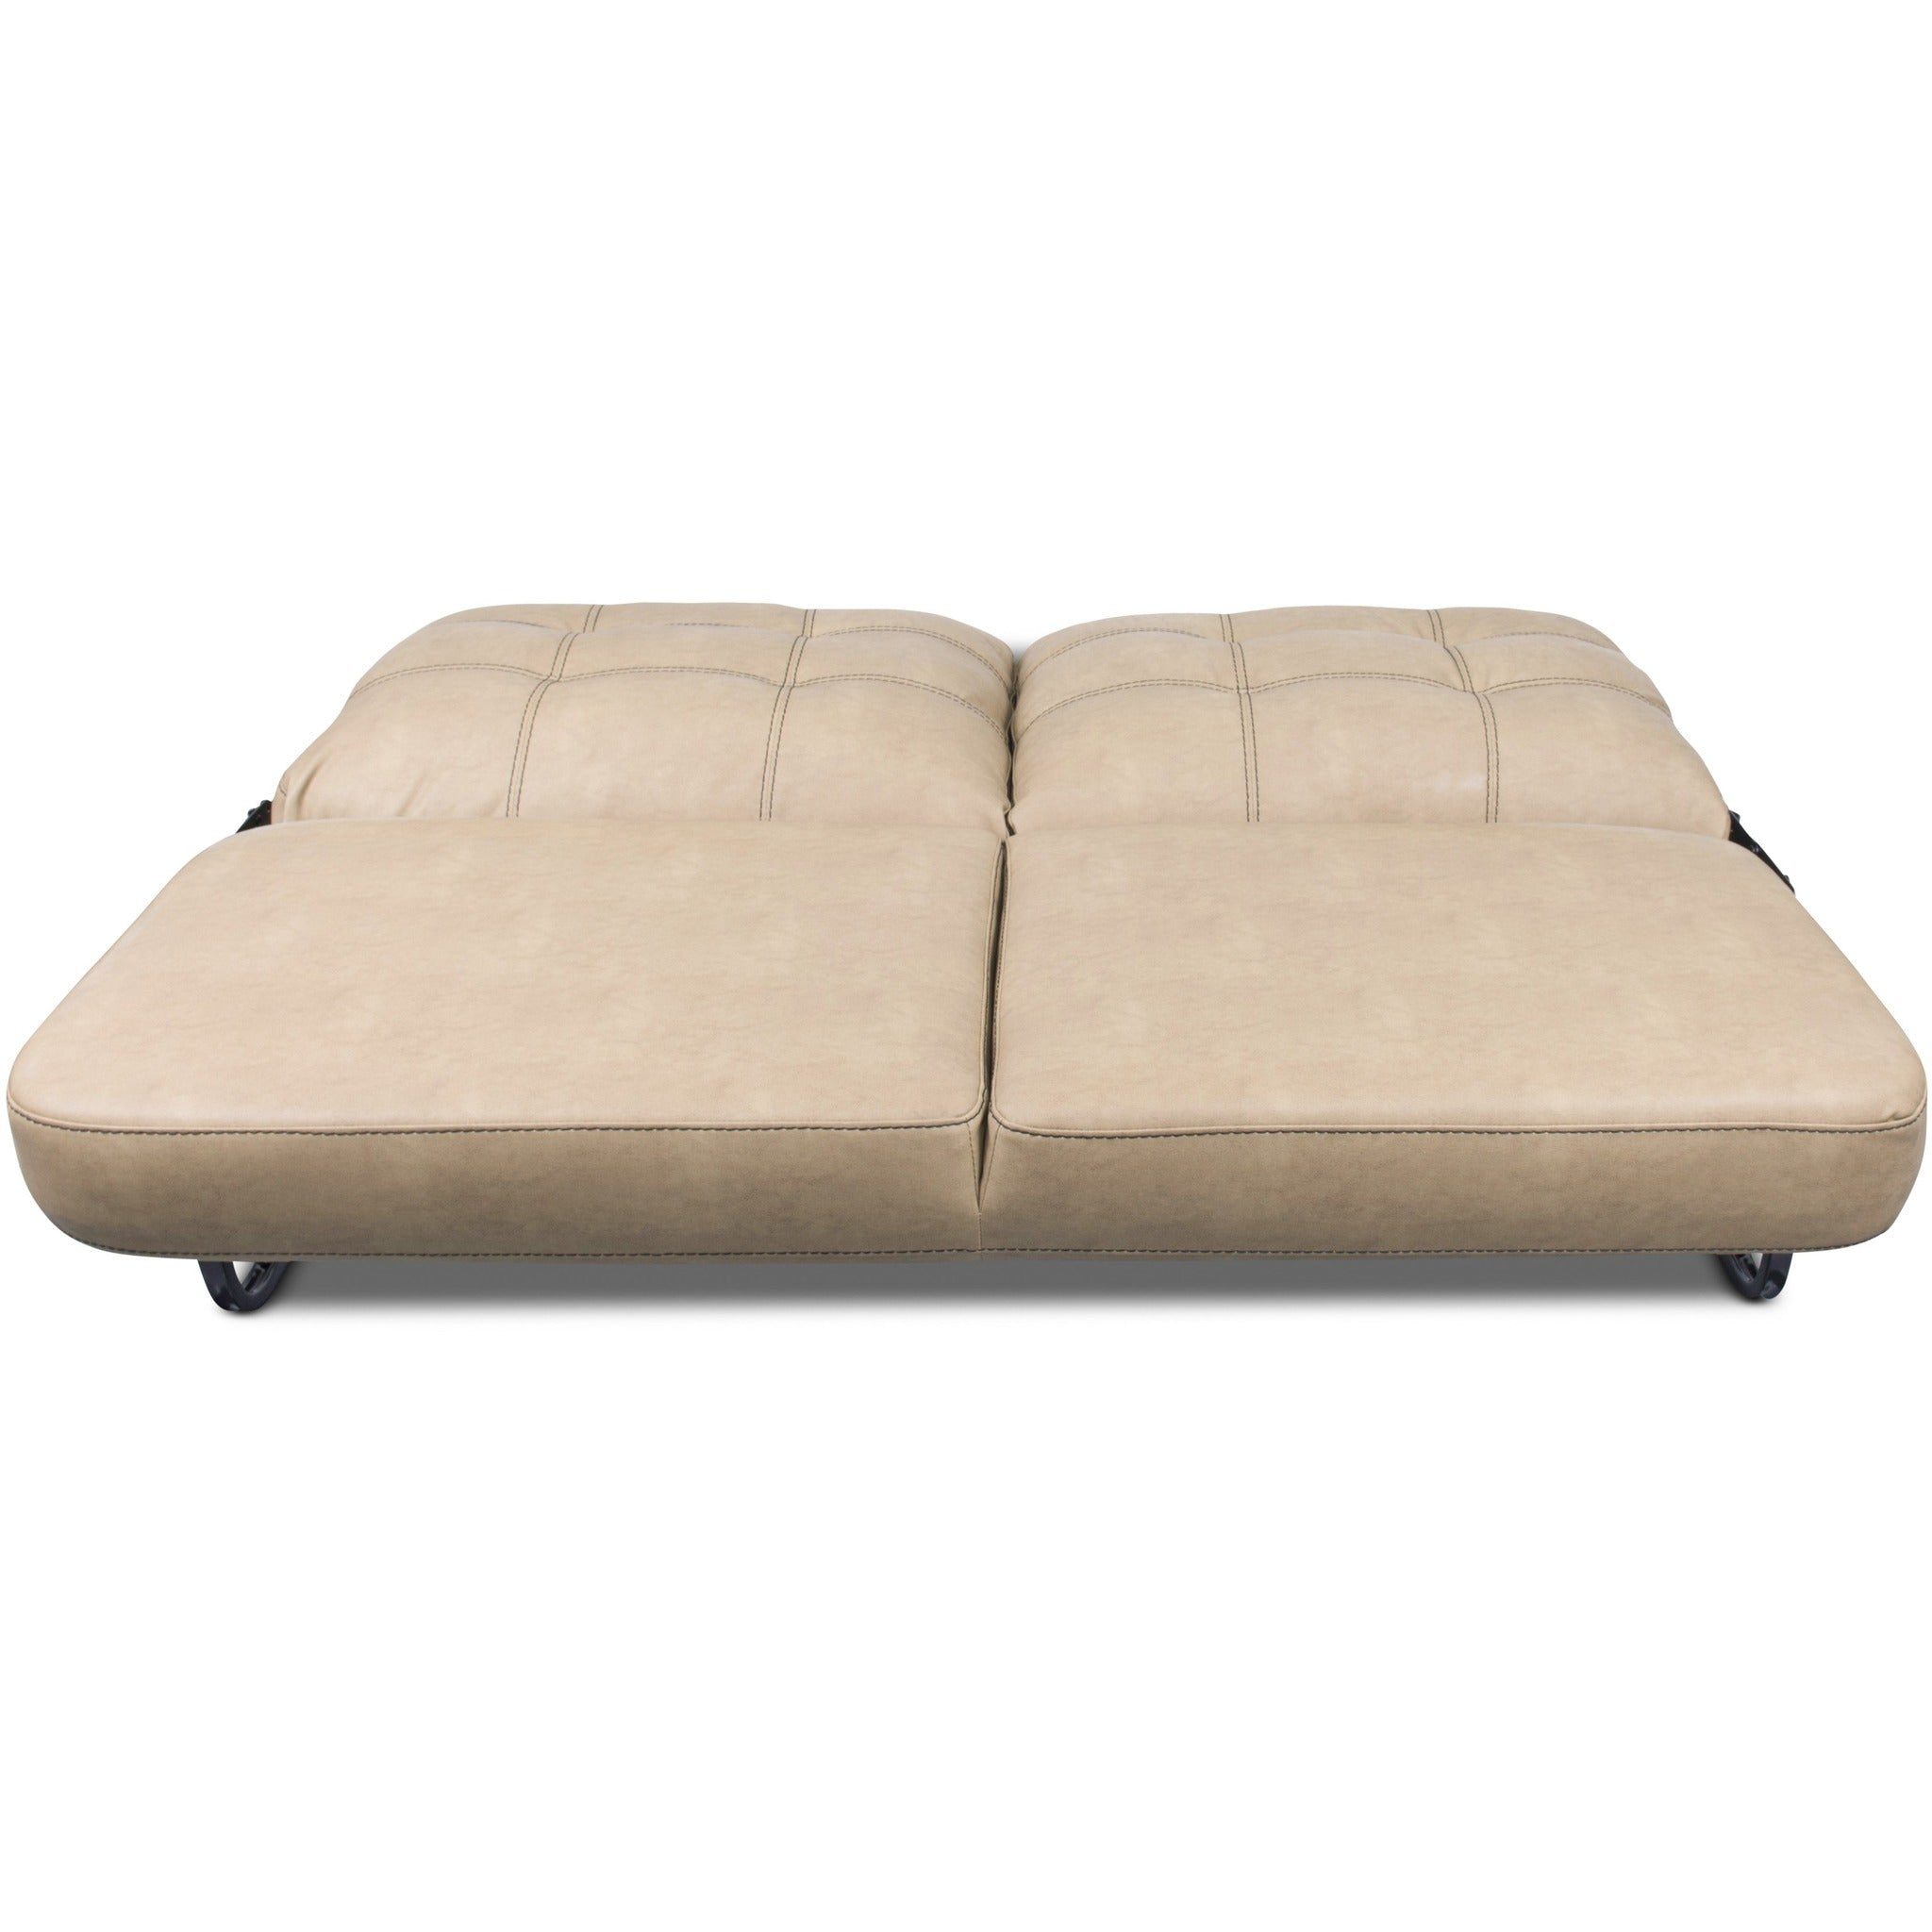 Pleasant Lippert 364578 62 Jack Knife Sofa In Beckham Tan Alphanode Cool Chair Designs And Ideas Alphanodeonline